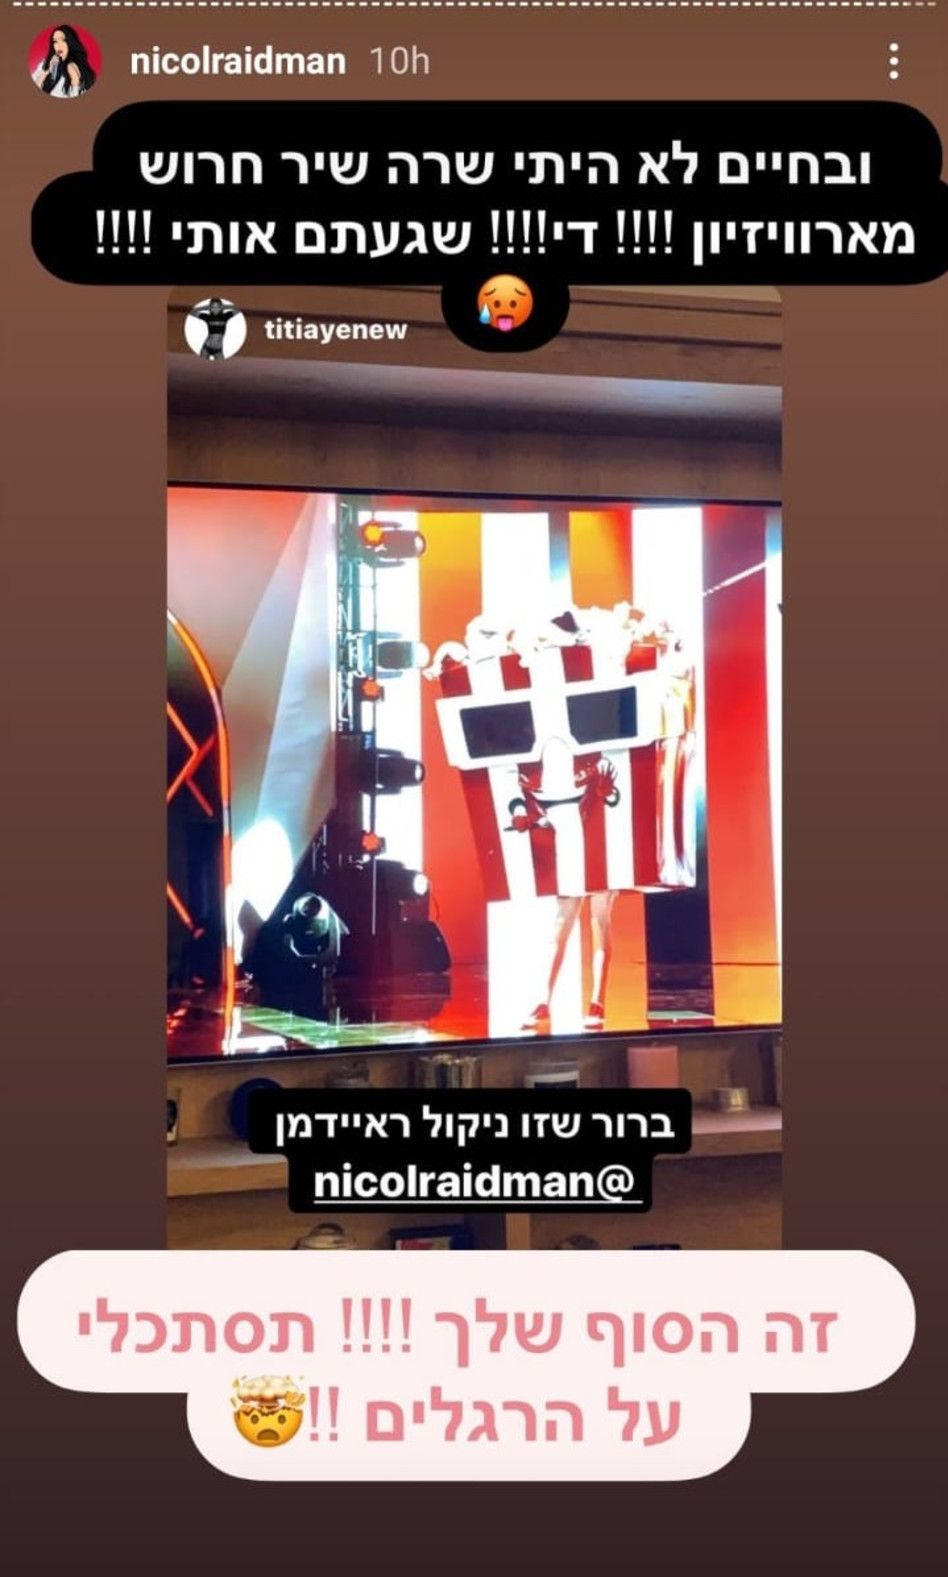 Nicole Reidman responds to the rumors (Photo: Instagram screenshot)